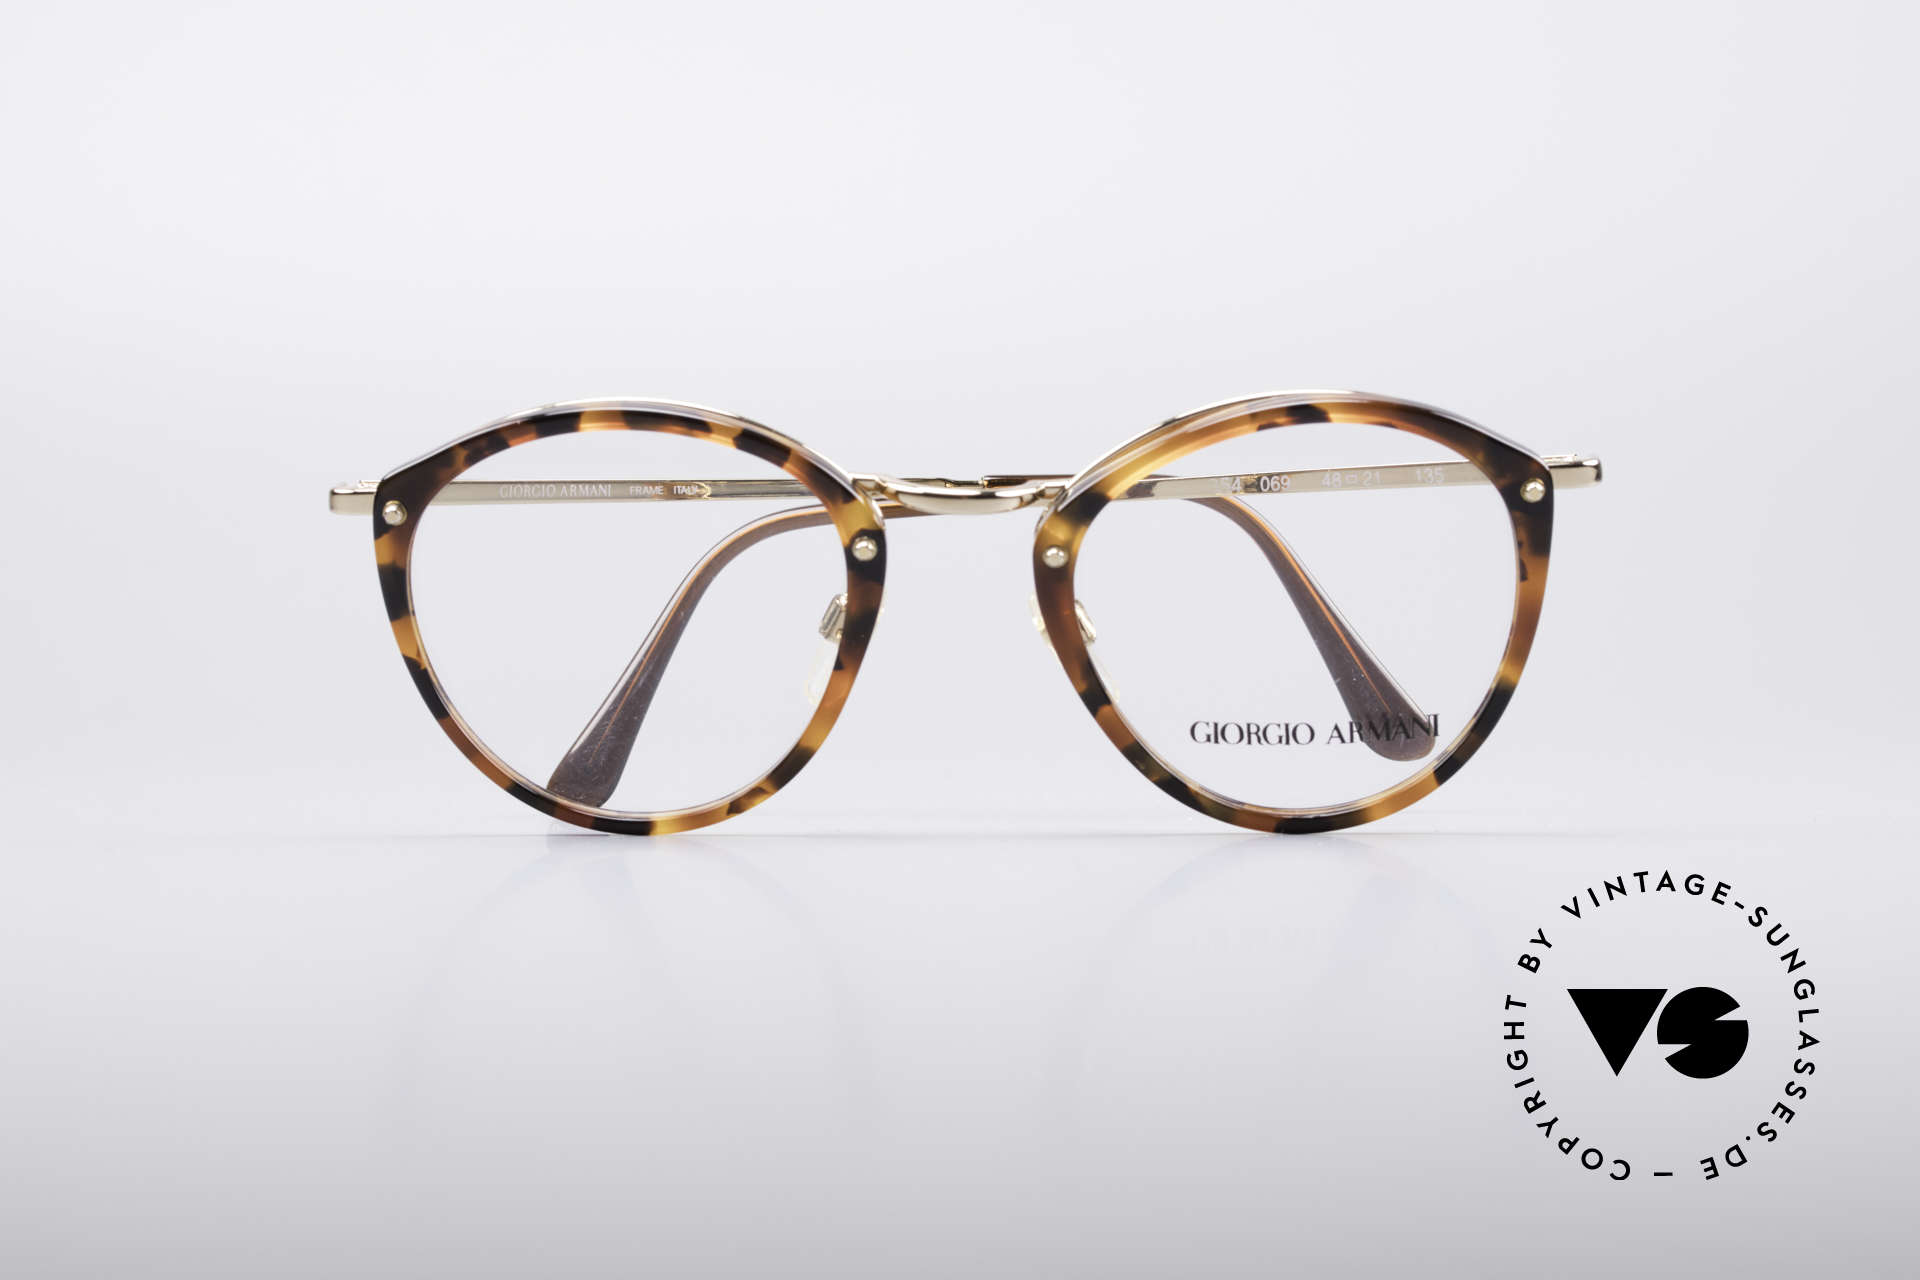 Giorgio Armani 354 No Retro Glasses 80's Frame, demo lenses can be replaced with optical or sun lenses, Made for Men and Women